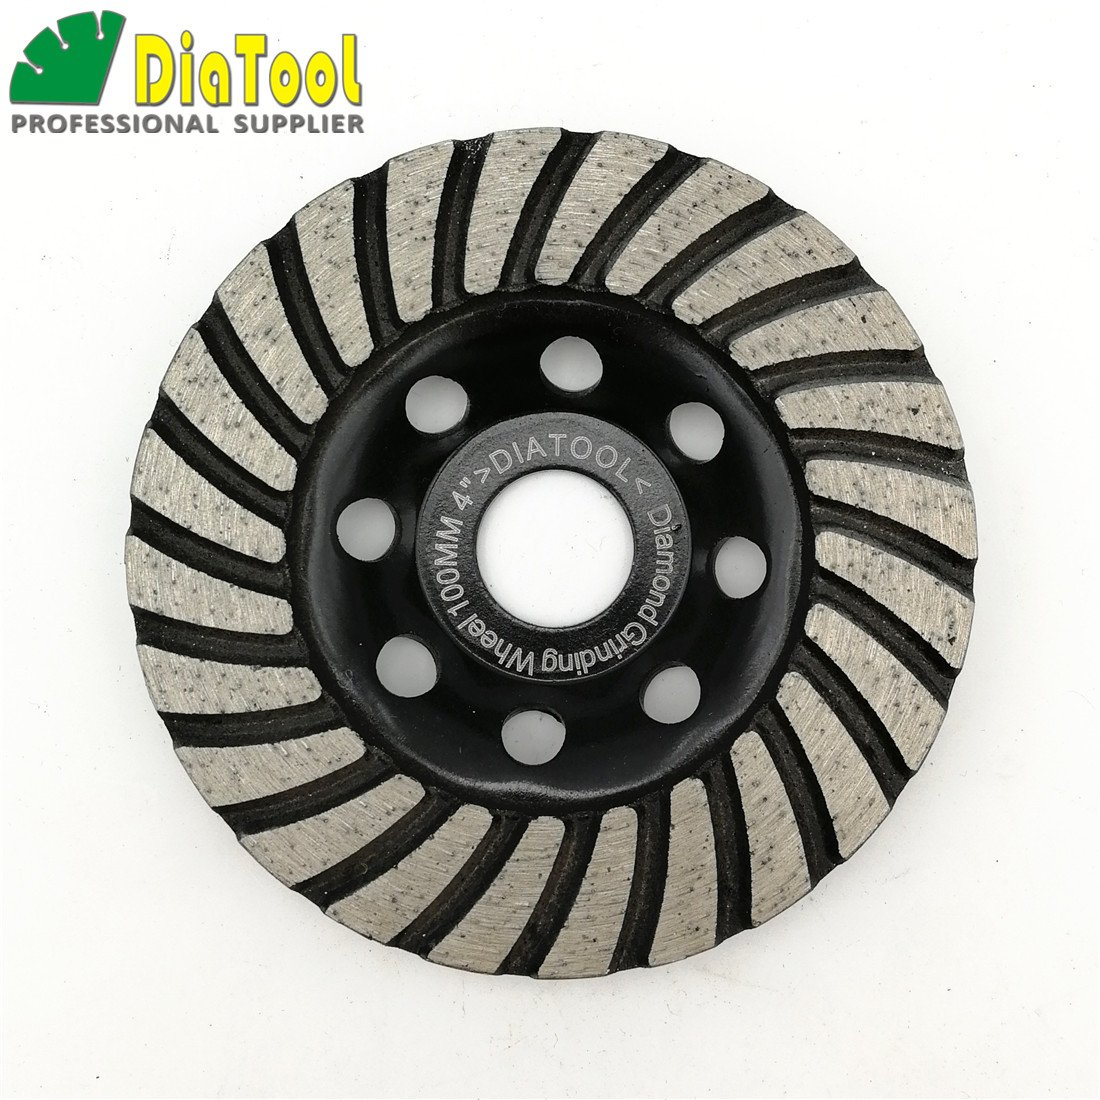 DIATOOL 1pc Diameter 7' Diamond Turbo Row Grinding Cup Wheel Grits 40-50 For concrete Masonry and some other construction material Grinding discs SHANGHAI DIATOOL CO. LTD.